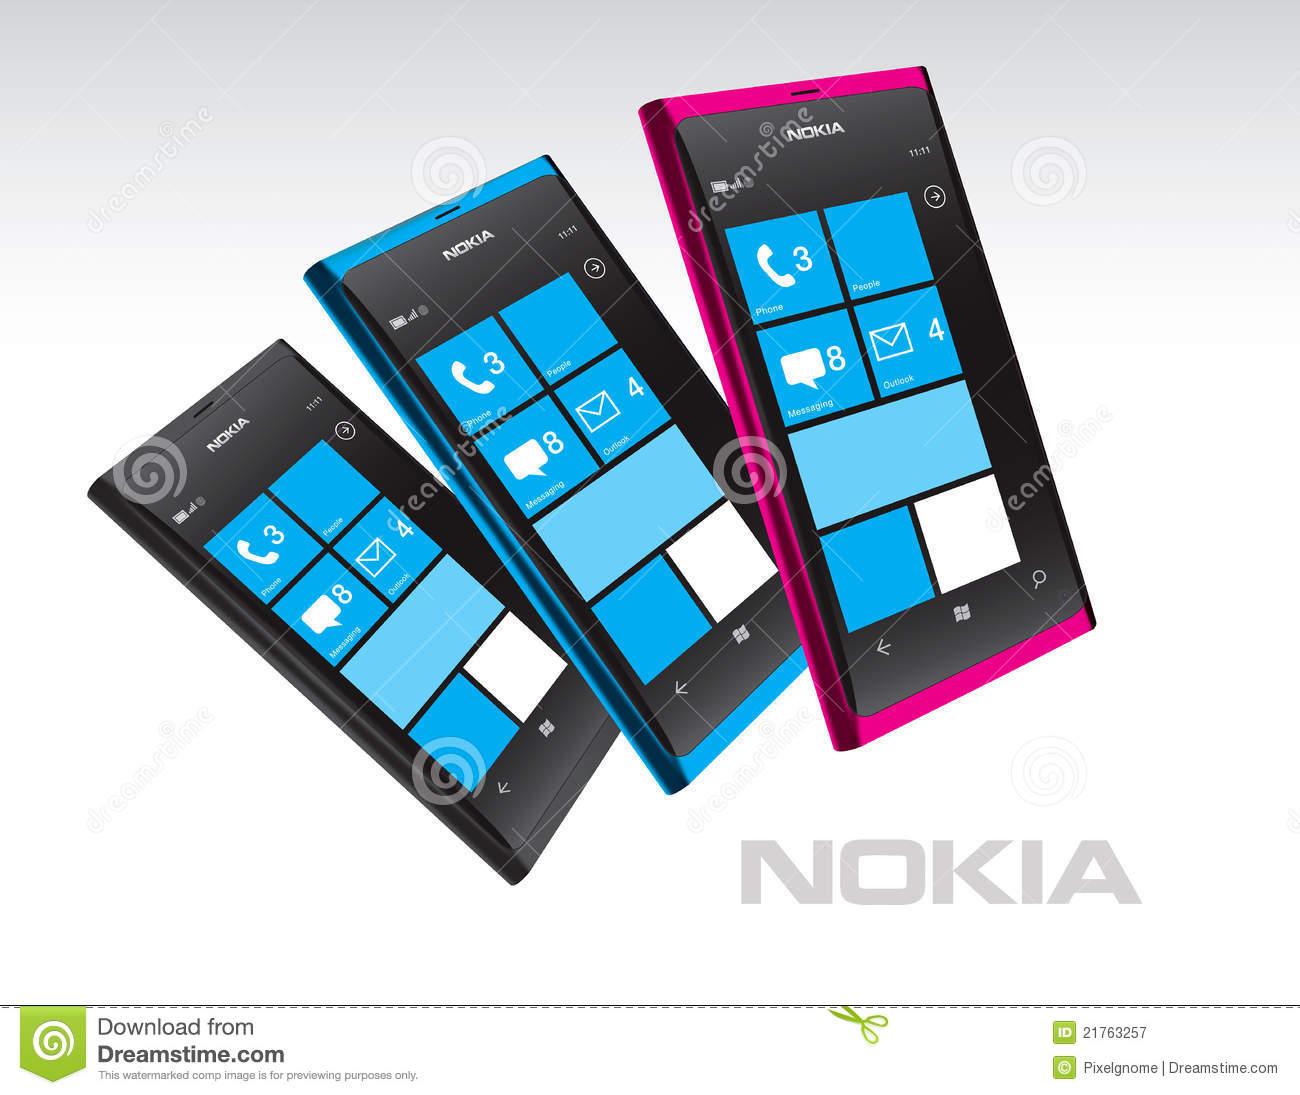 Windows Phone OS, handsets Lumia 800 and Lumia 710 announced